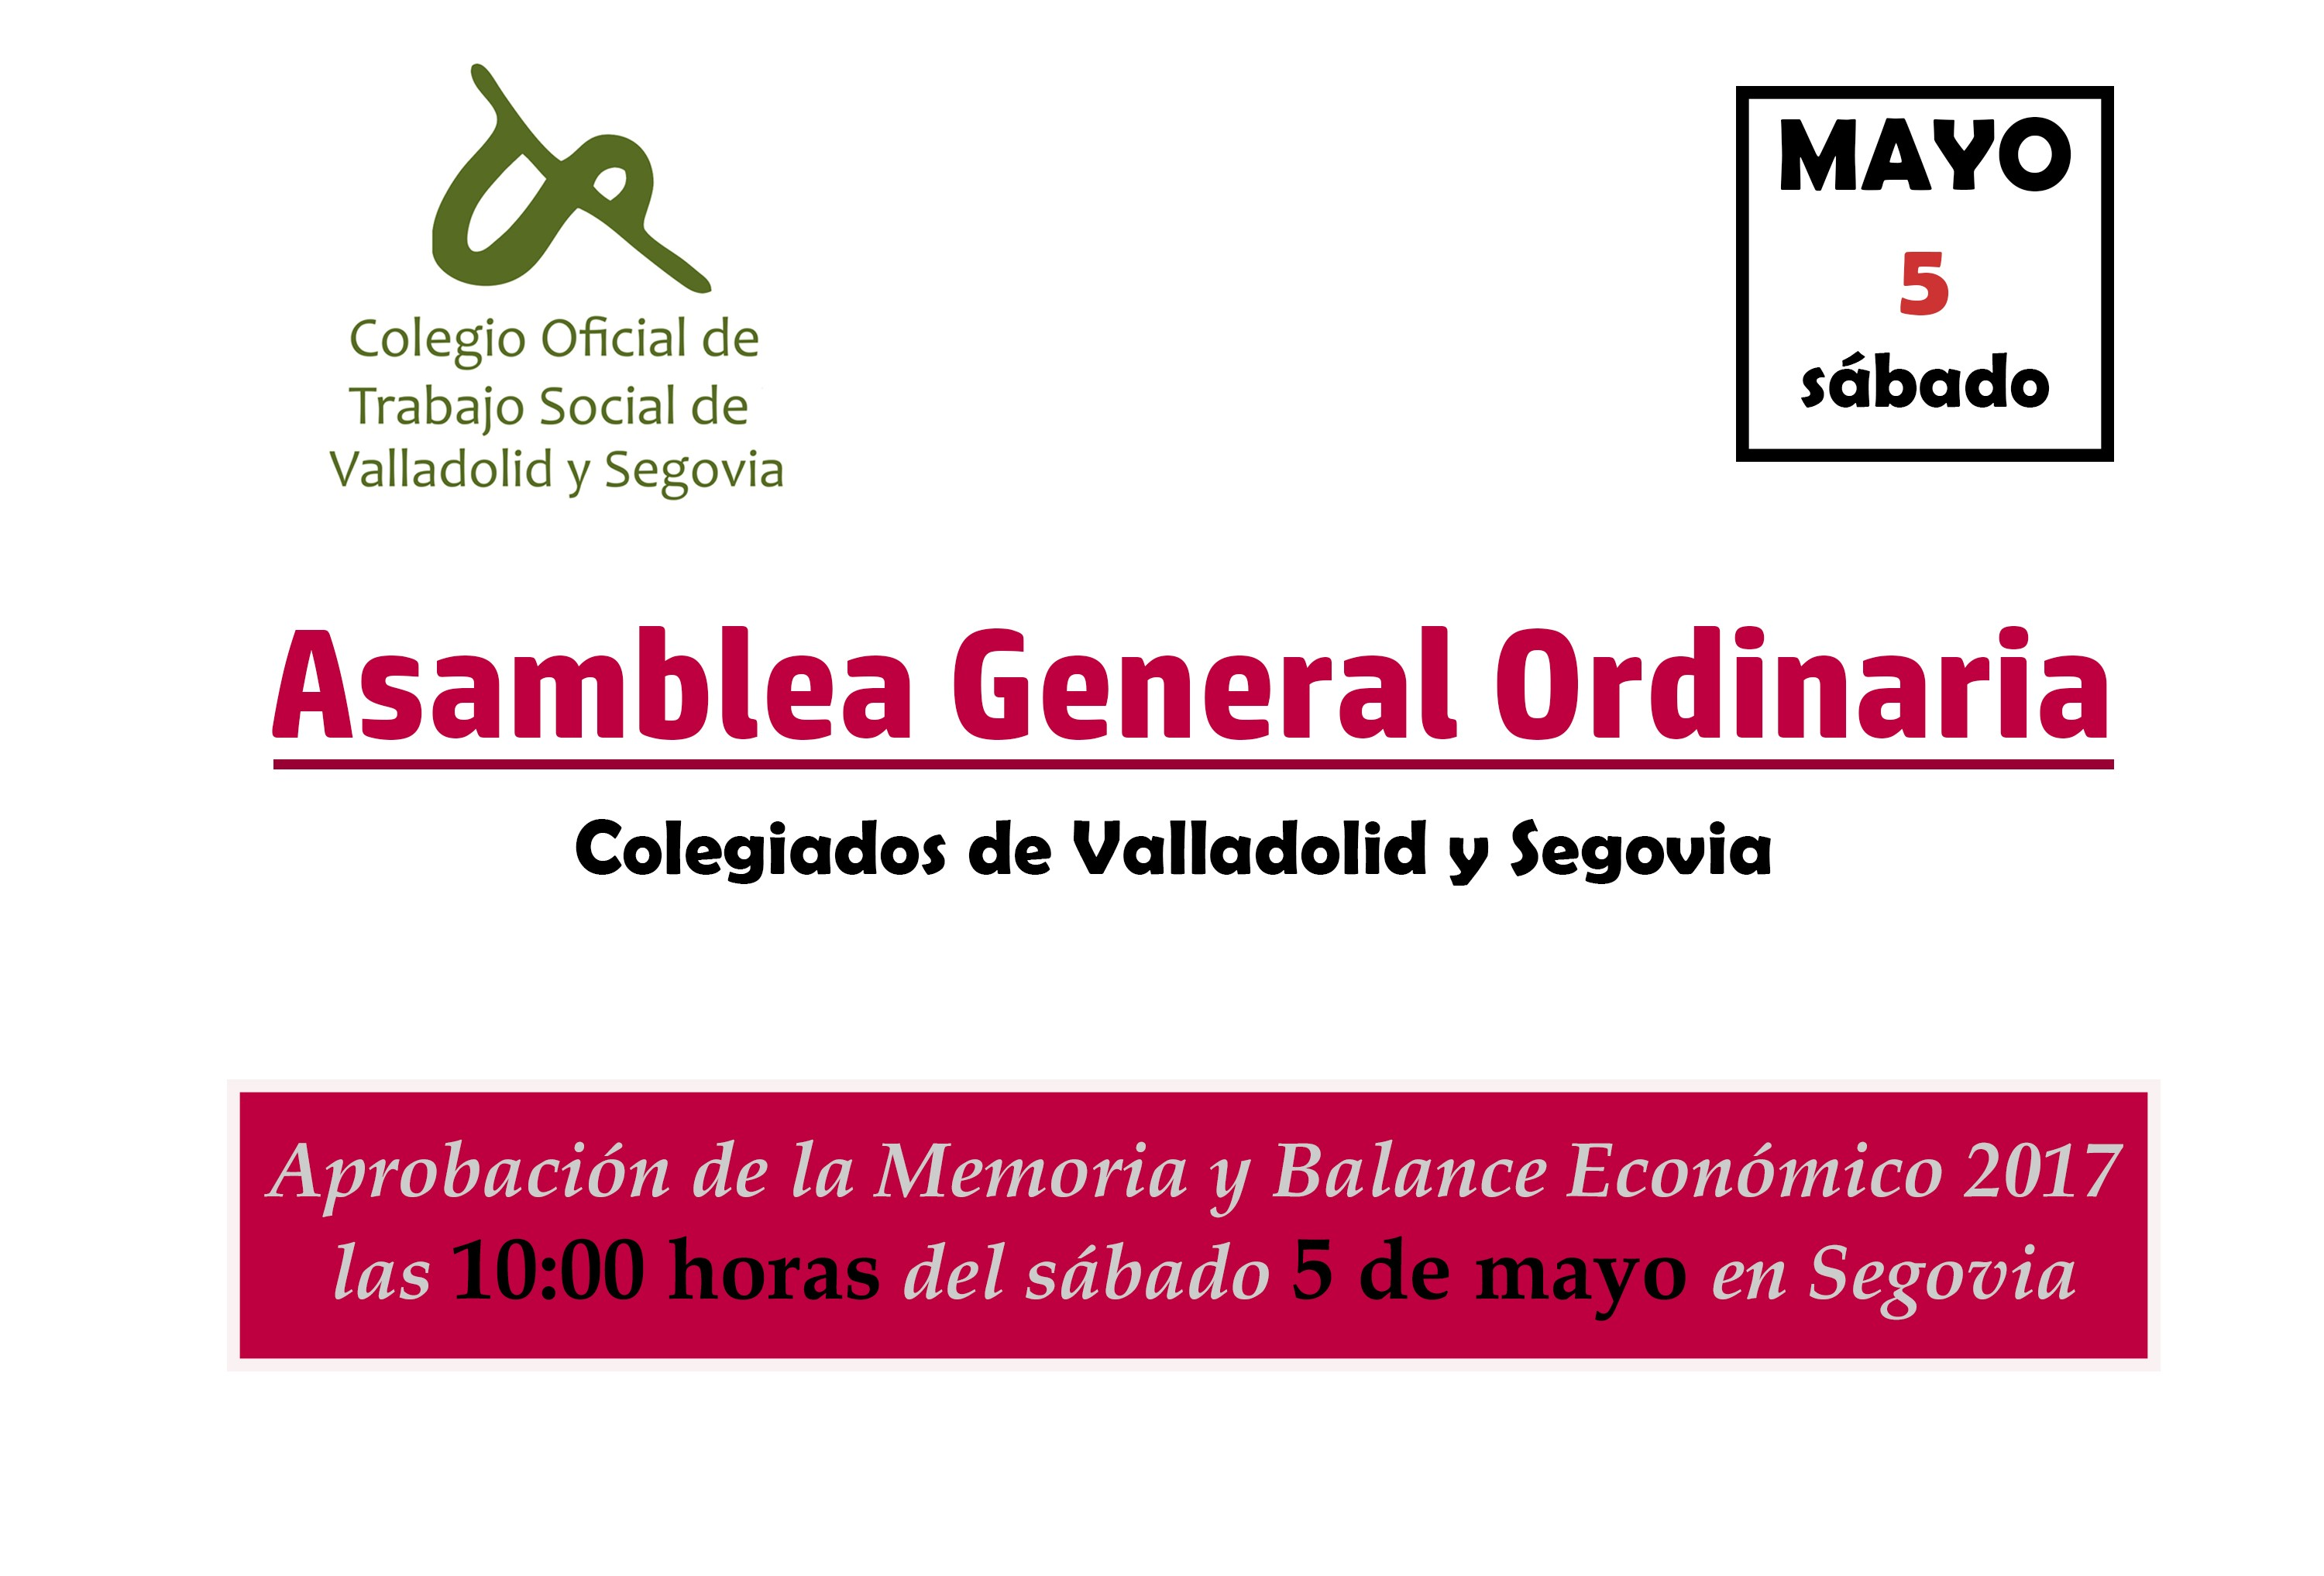 Asamblea General Ordinaria Segovia